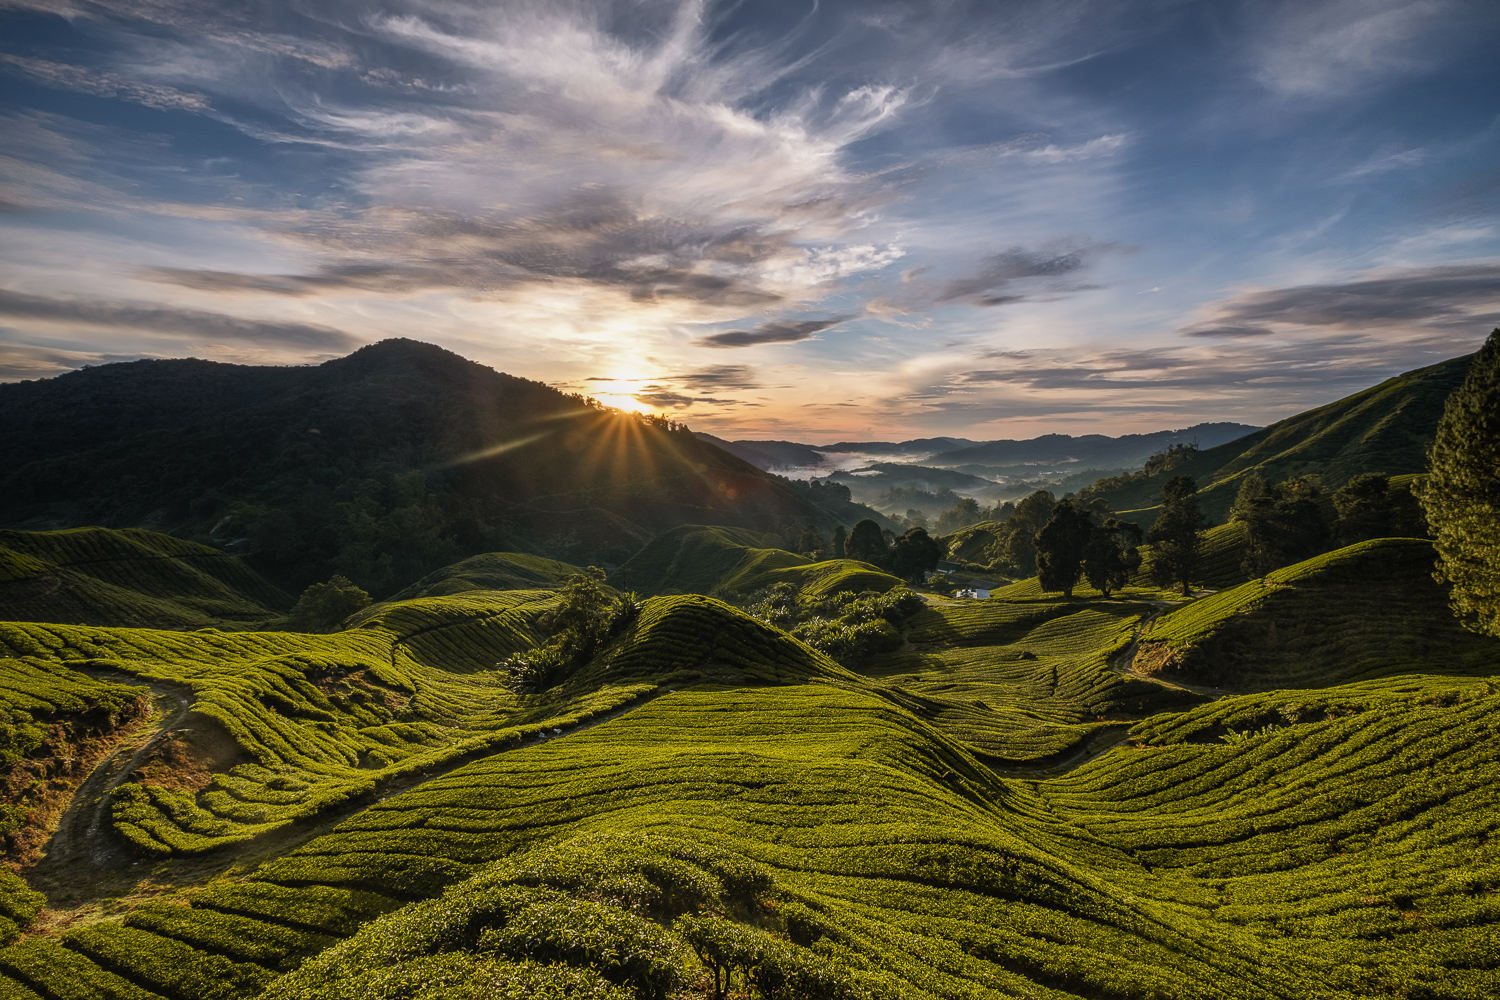 The first sun lights hits green tea fields in Cameron Highlands in Malaysia